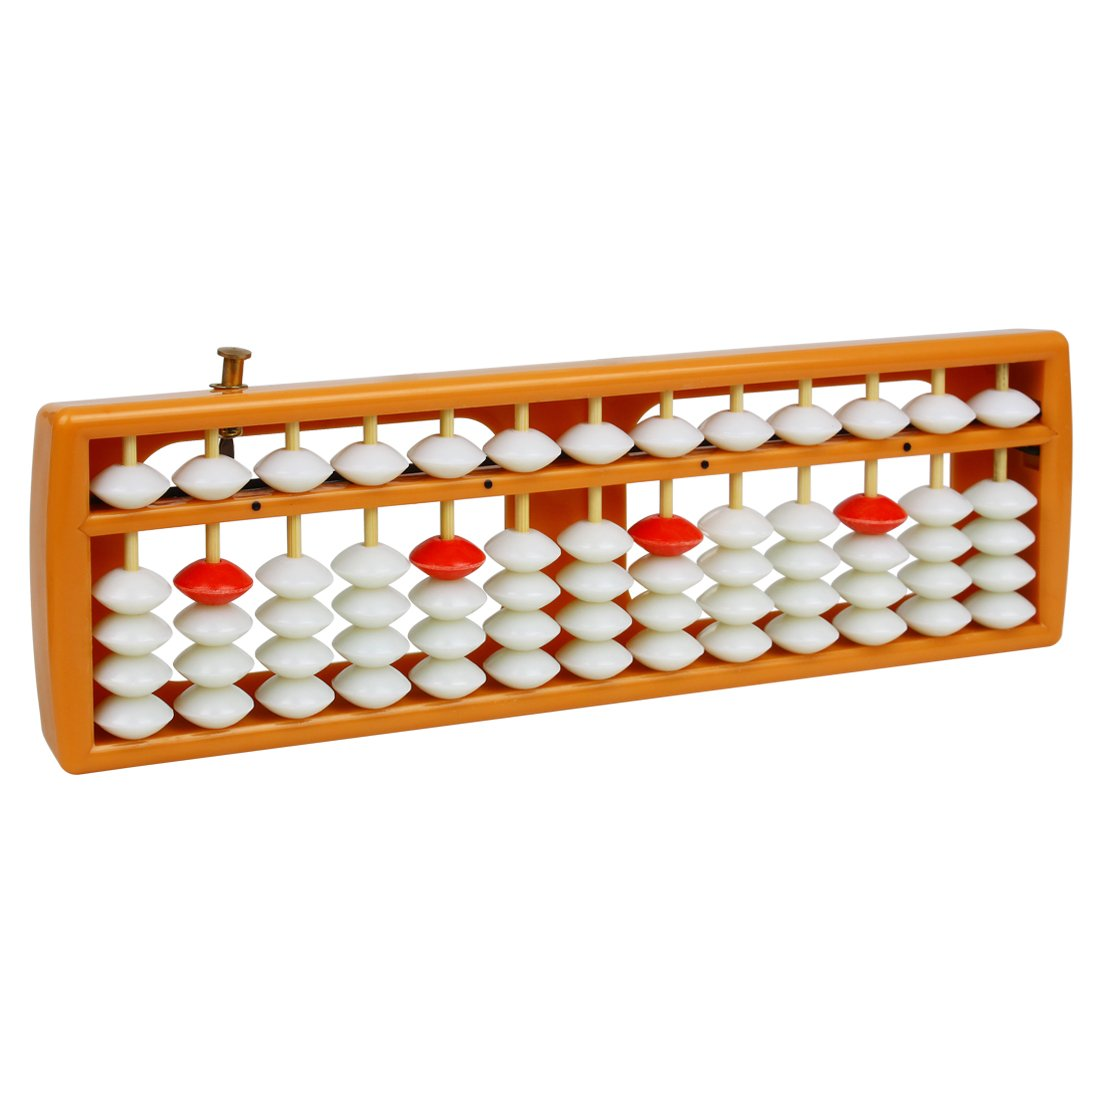 Larcele Bead Arithmetic Counting Abacus with Reset Button School Supplies for Children, 13 Column SP-02